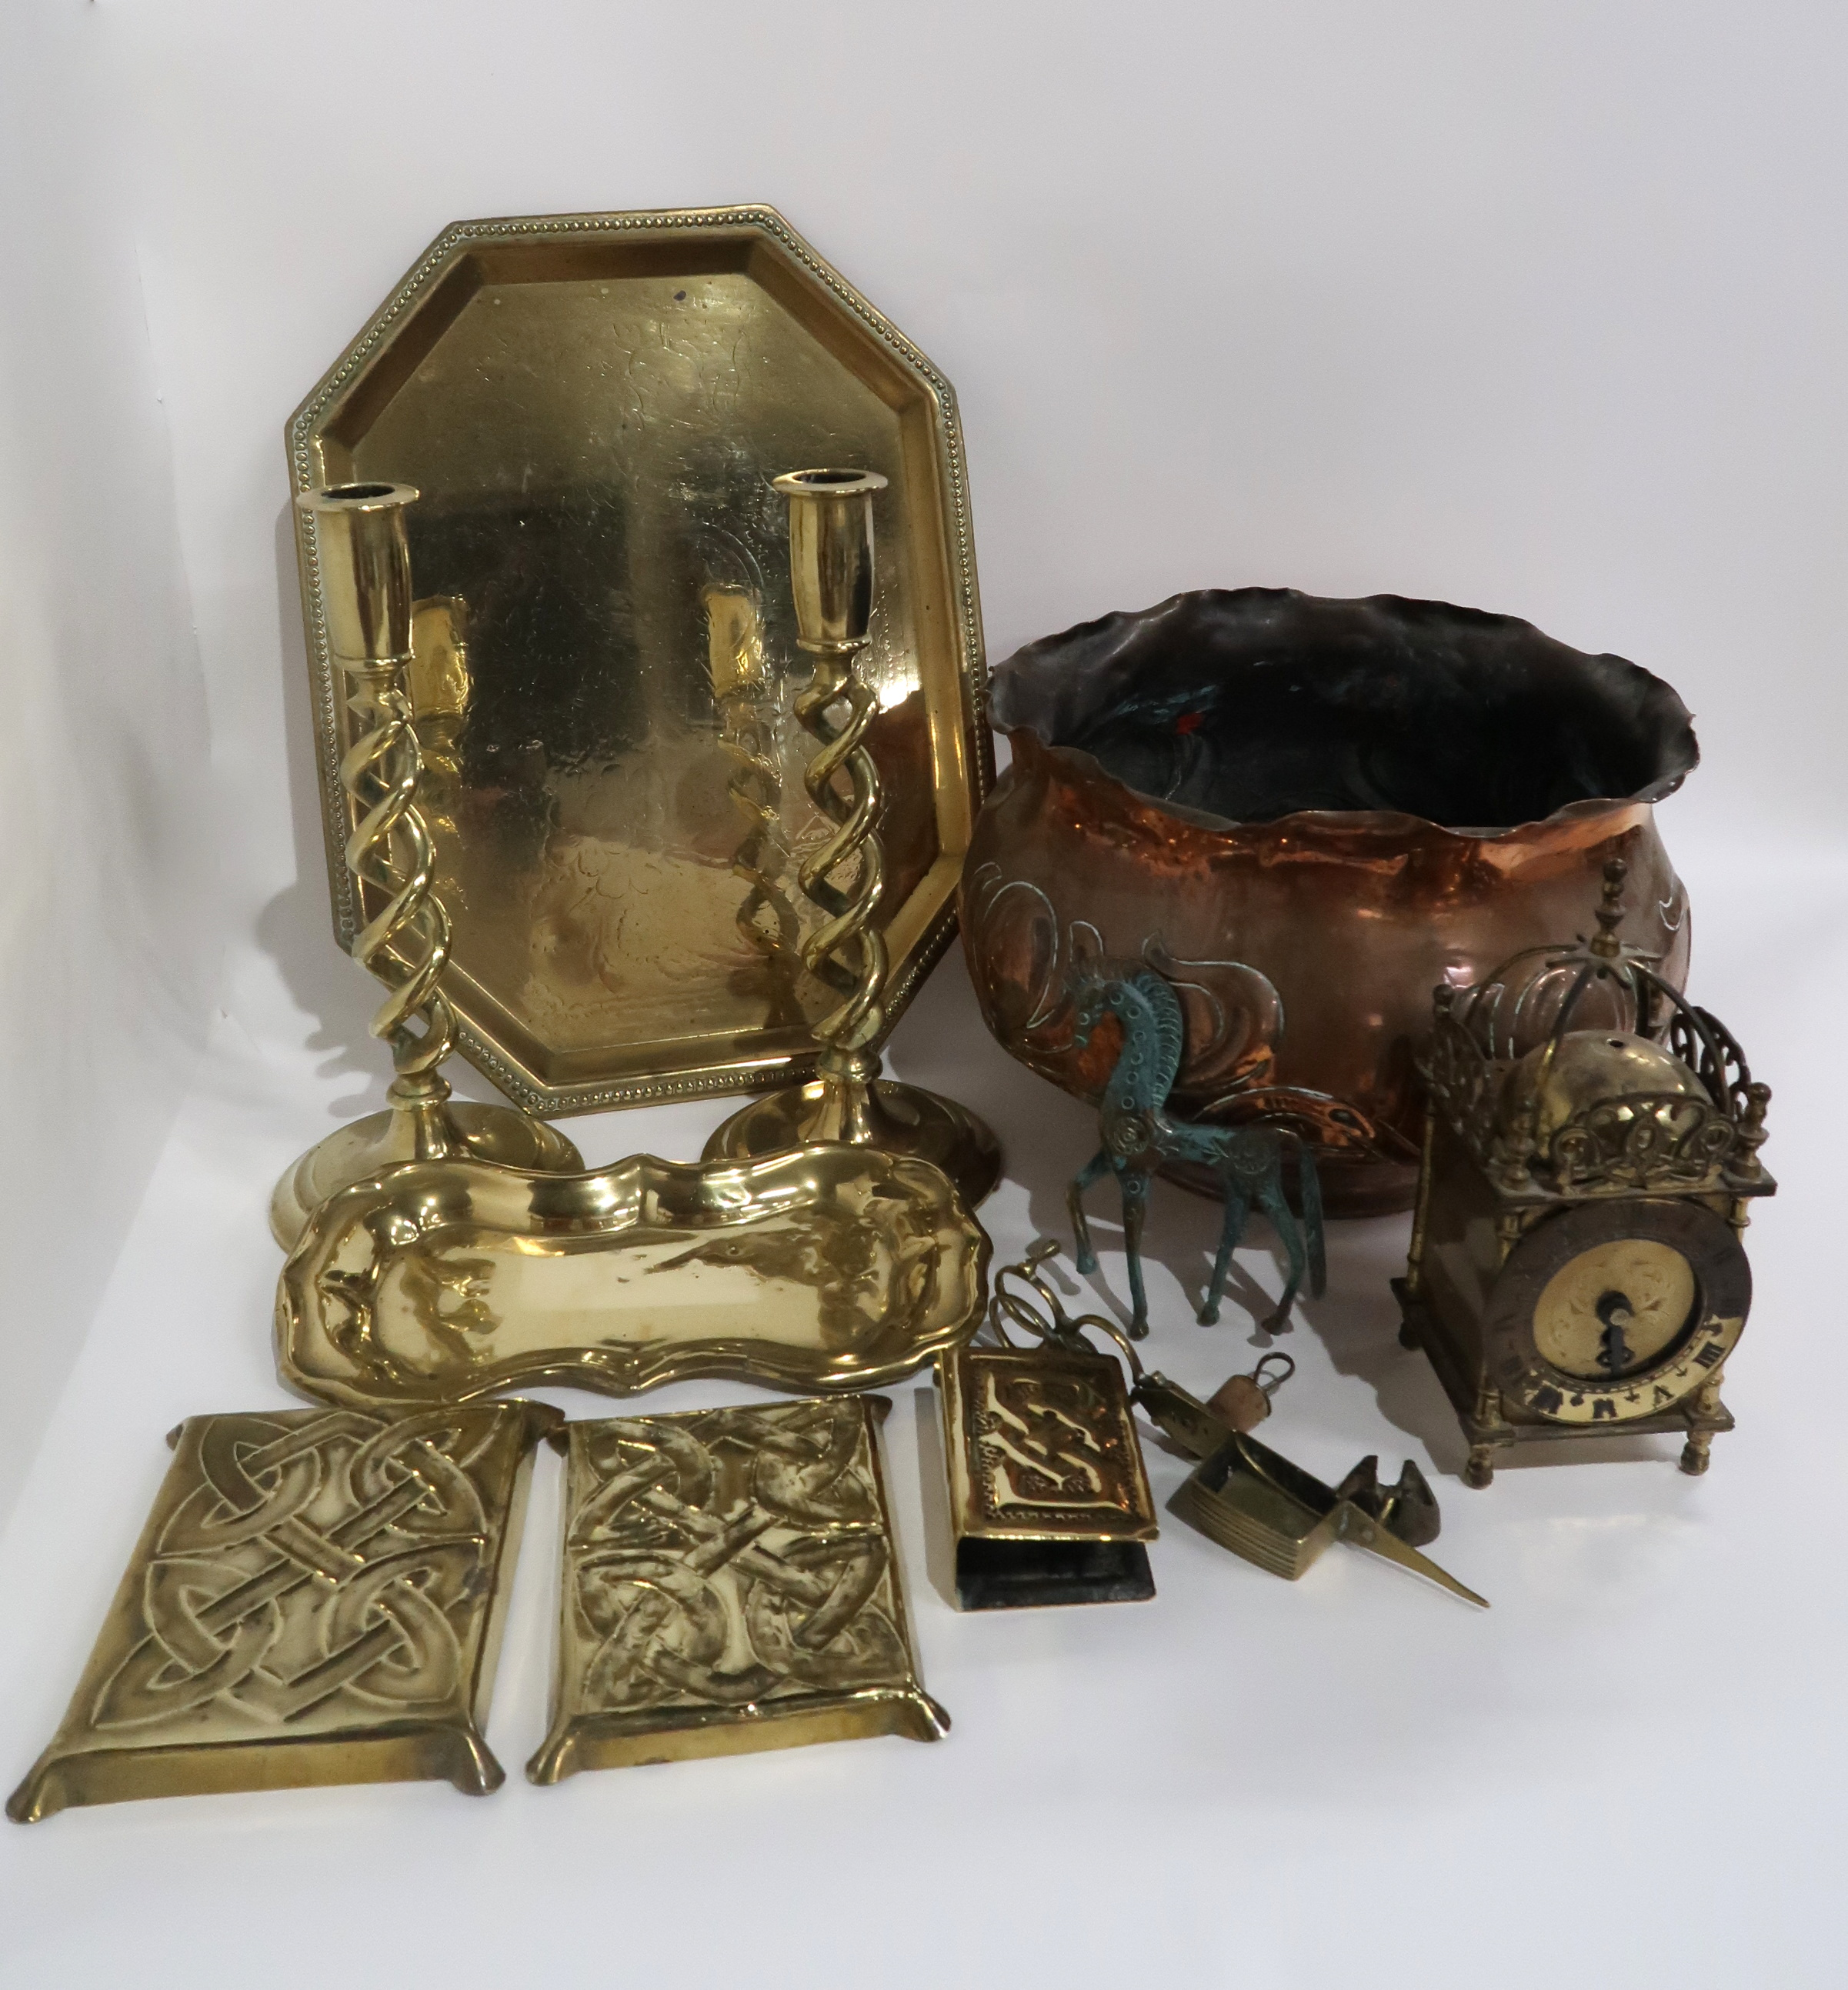 A WILLIAM SOUTTER AND SONS COPPER JARDINIERE two brass celtic knotwork trinket dishes, a similar